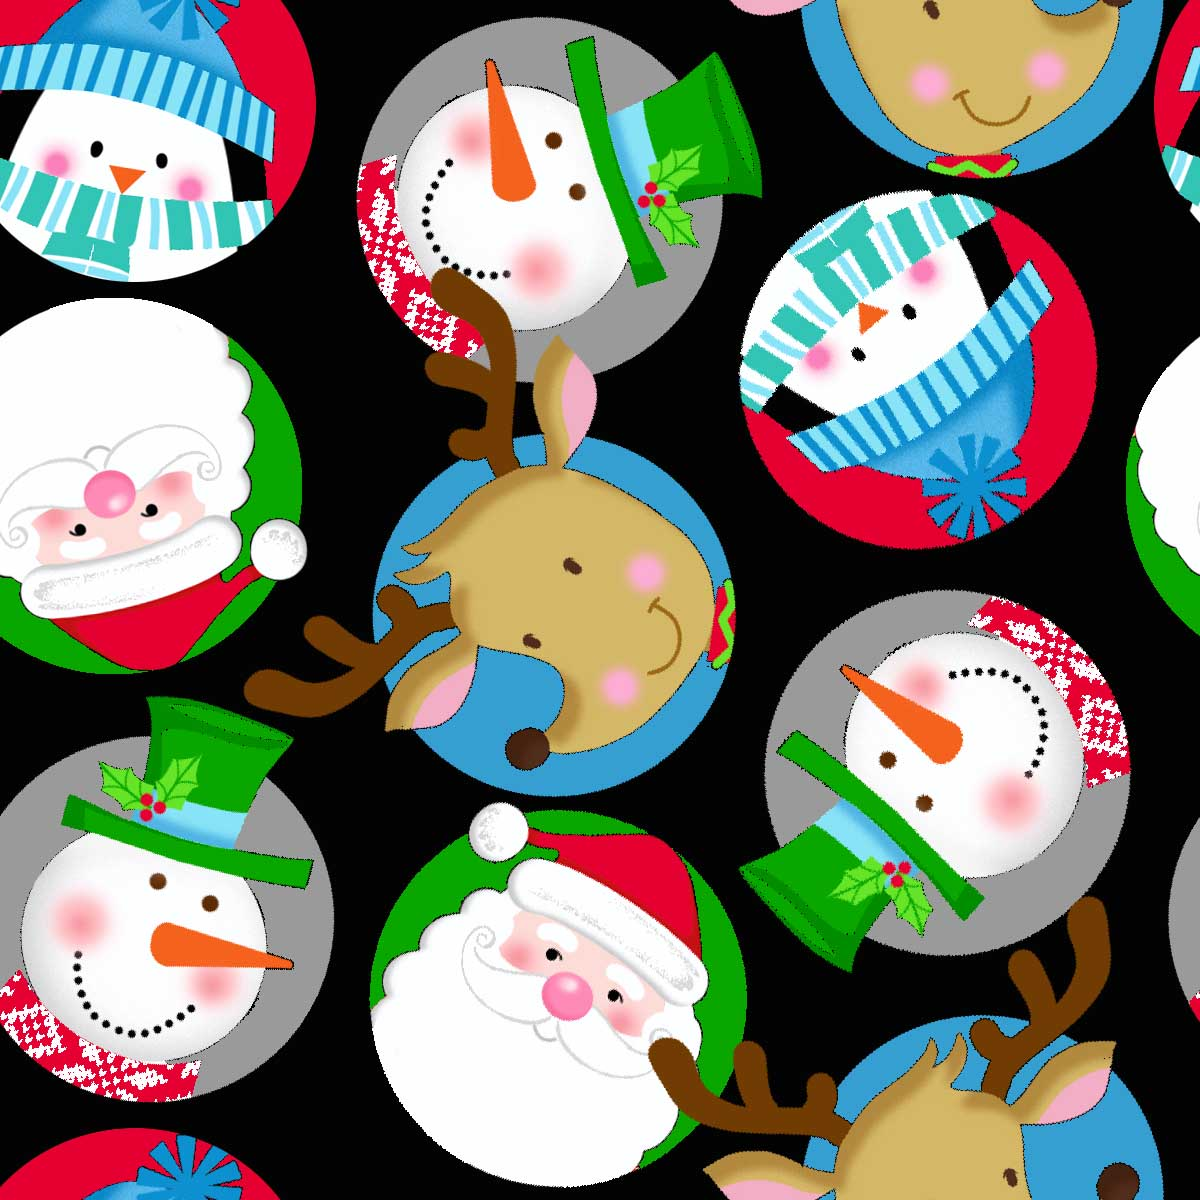 "FABRIC EDITIONS, COTTON FABRIC, FAT QUARTER 18""X21"", HOLIDAY NORTHPOLE CHARACTERS"